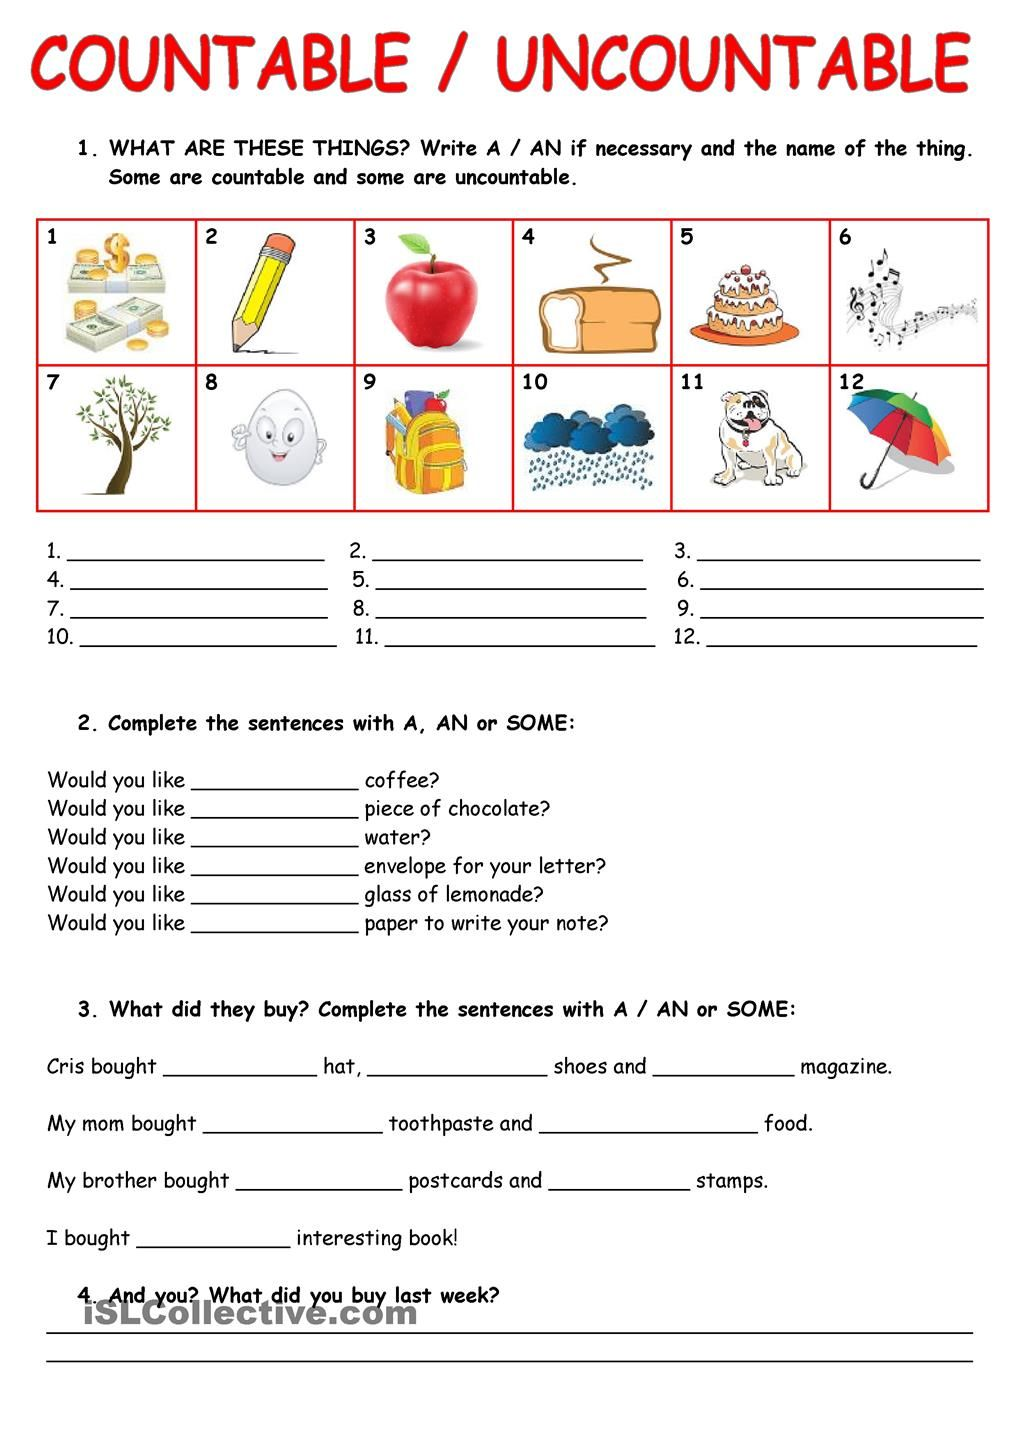 worksheet Count And Noncount Nouns Worksheet pinterest uncountable nouns